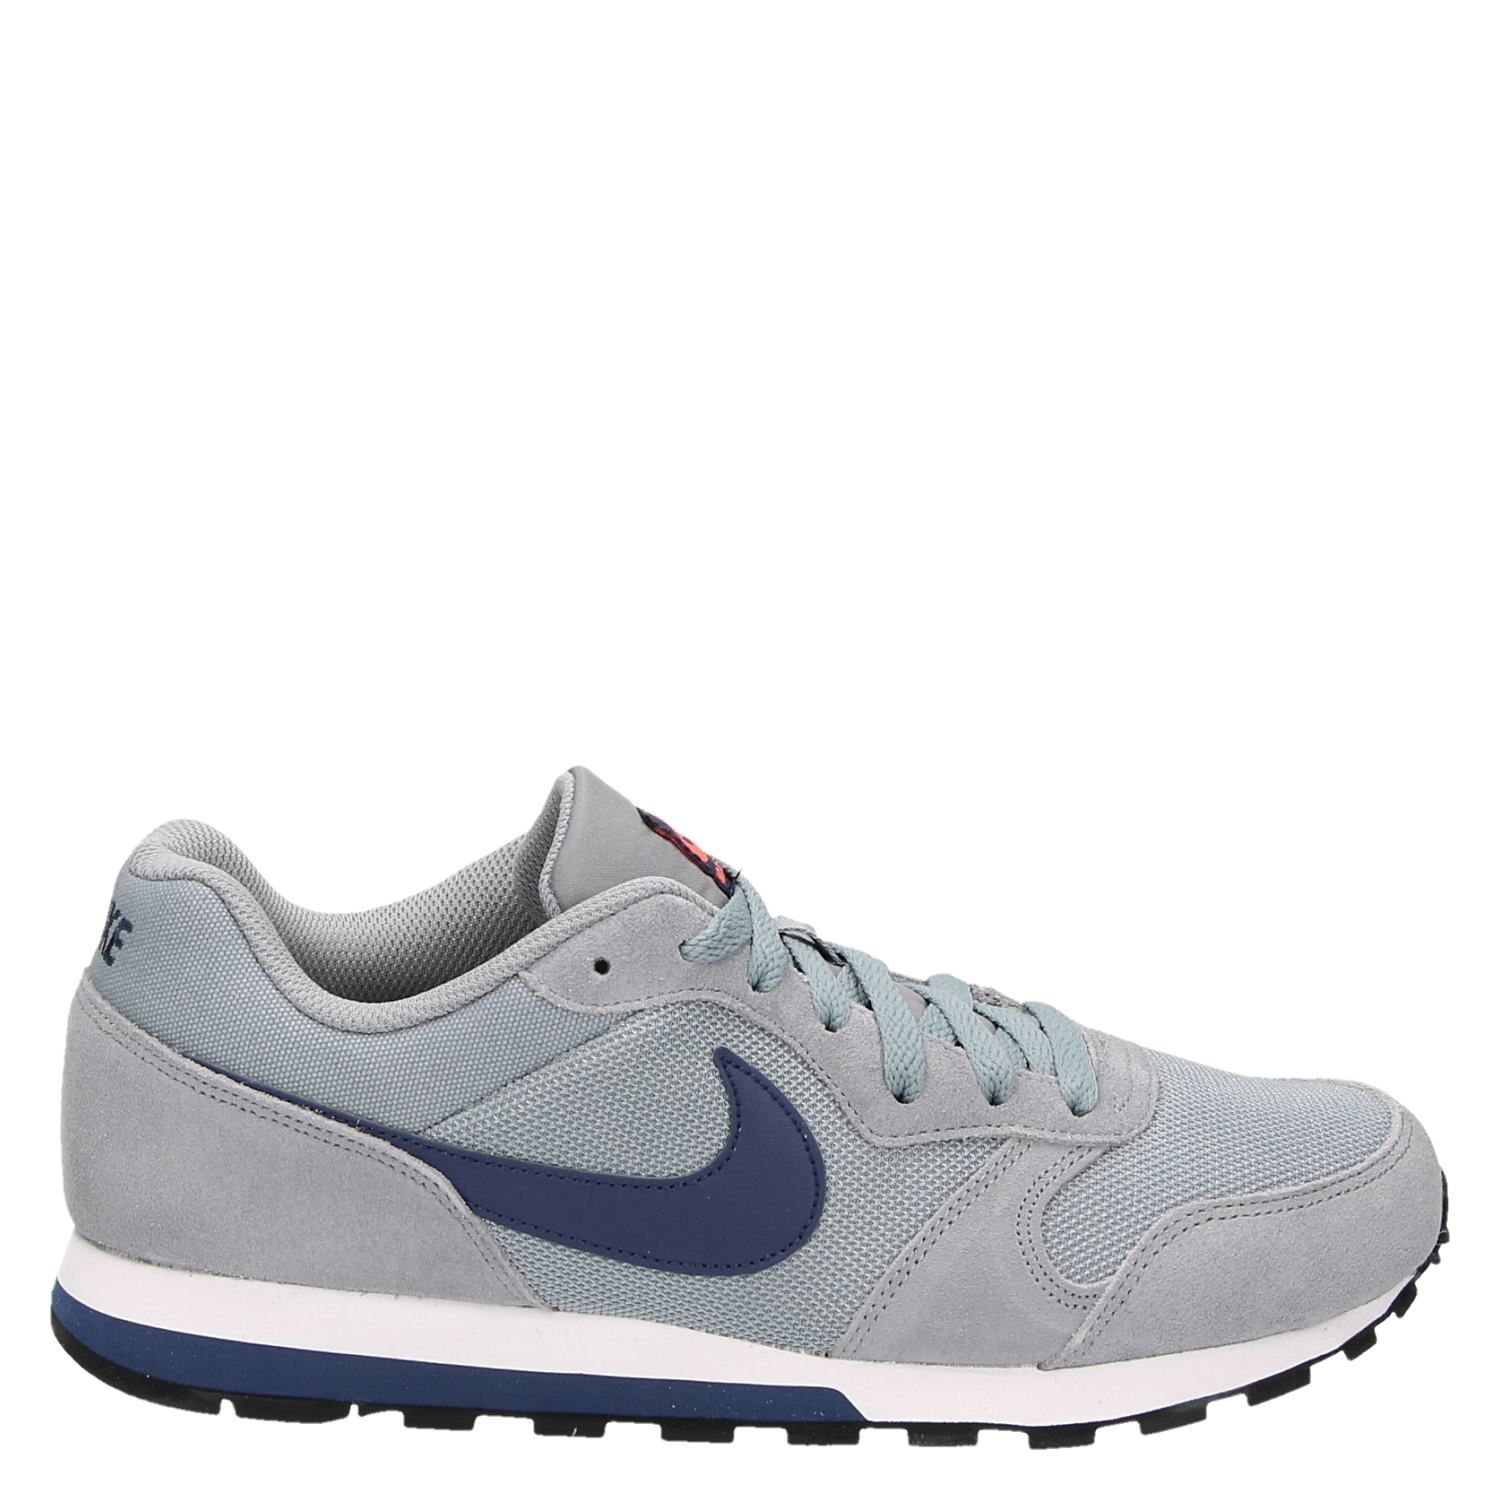 sale retailer 179ec 44998 Nike MD Runner 2 heren lage sneakers